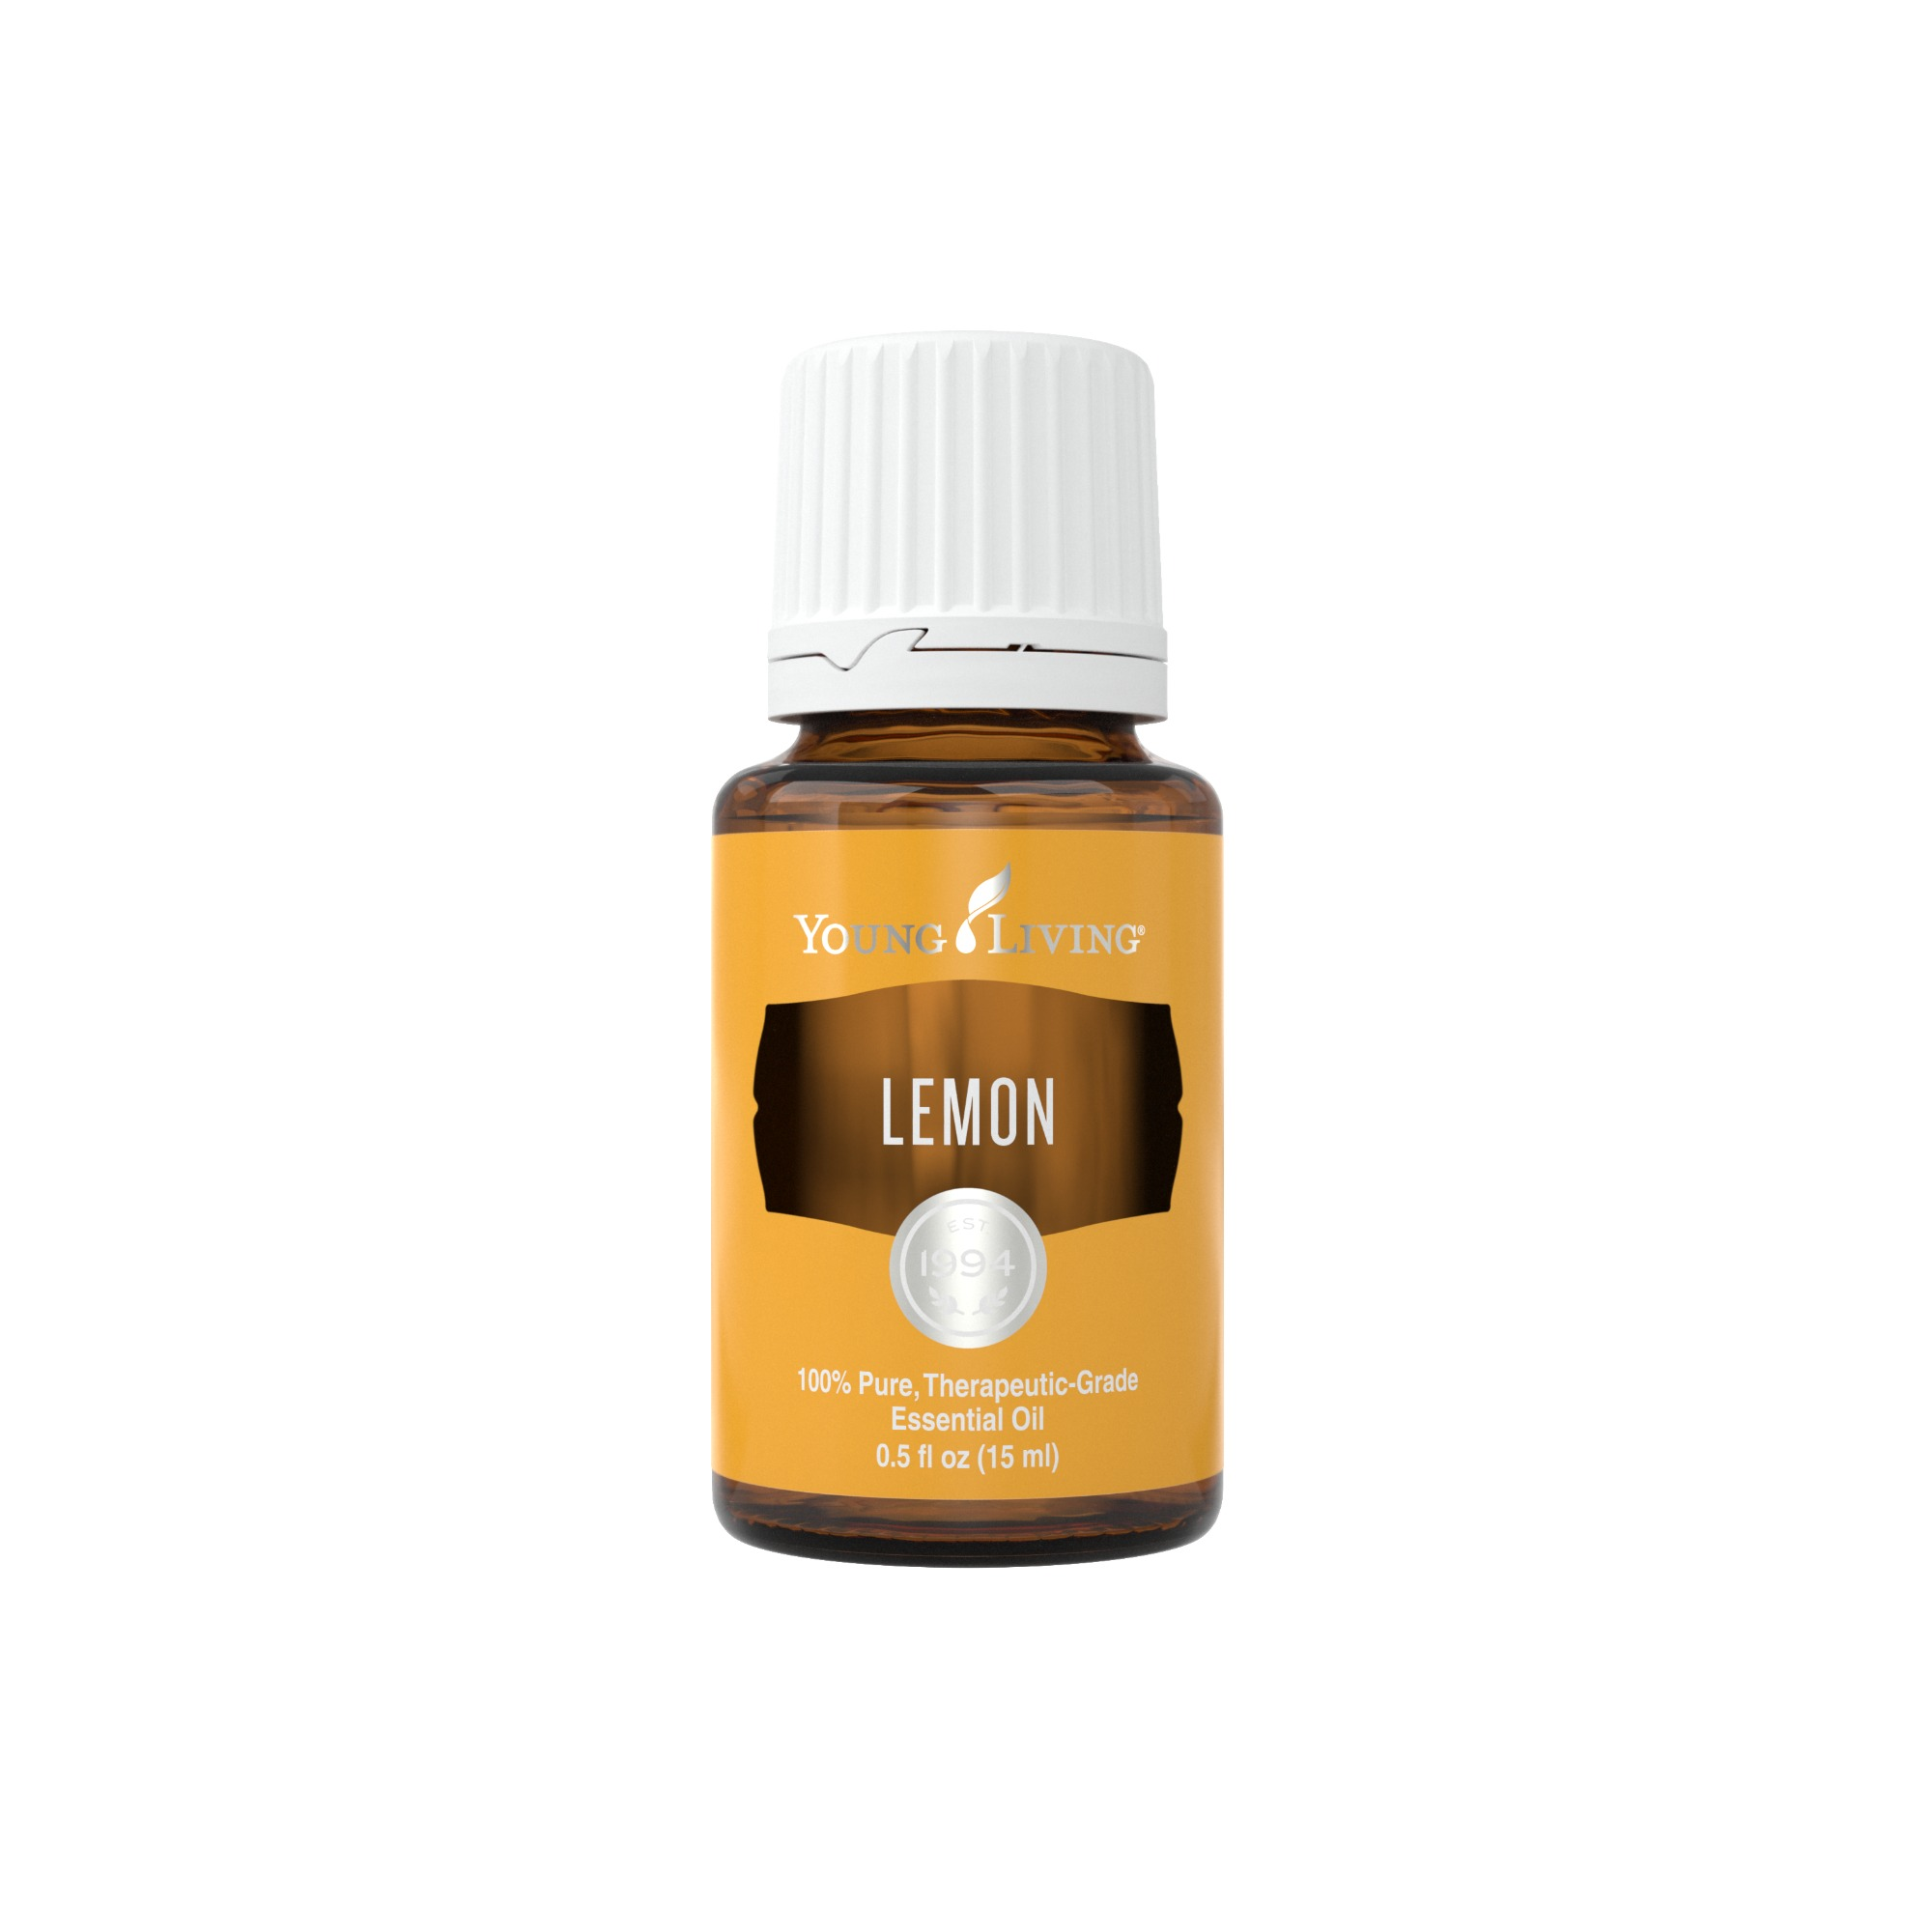 LEMON ESSENTIAL OIL    This essential oil is one of the most popularly used while cleaning! It cleanses windows, mirrors, and surfaces from dirt and grime, and quickly removes sticky residue.   Click here   to read more extensively on this product!